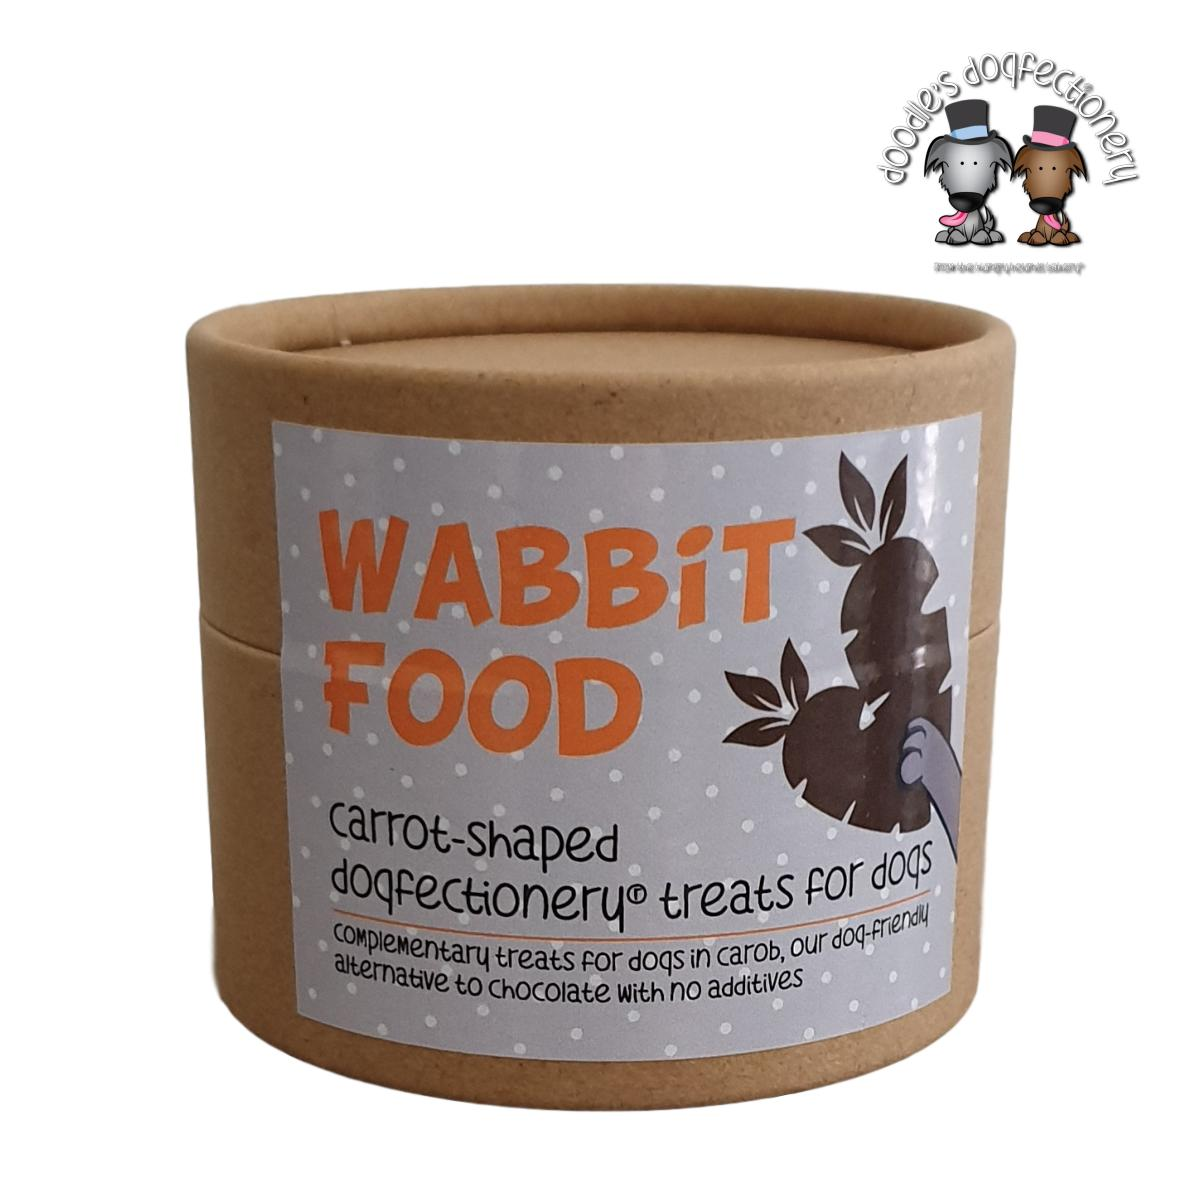 Doodles Dogfectionery Wabbit Food 12pk